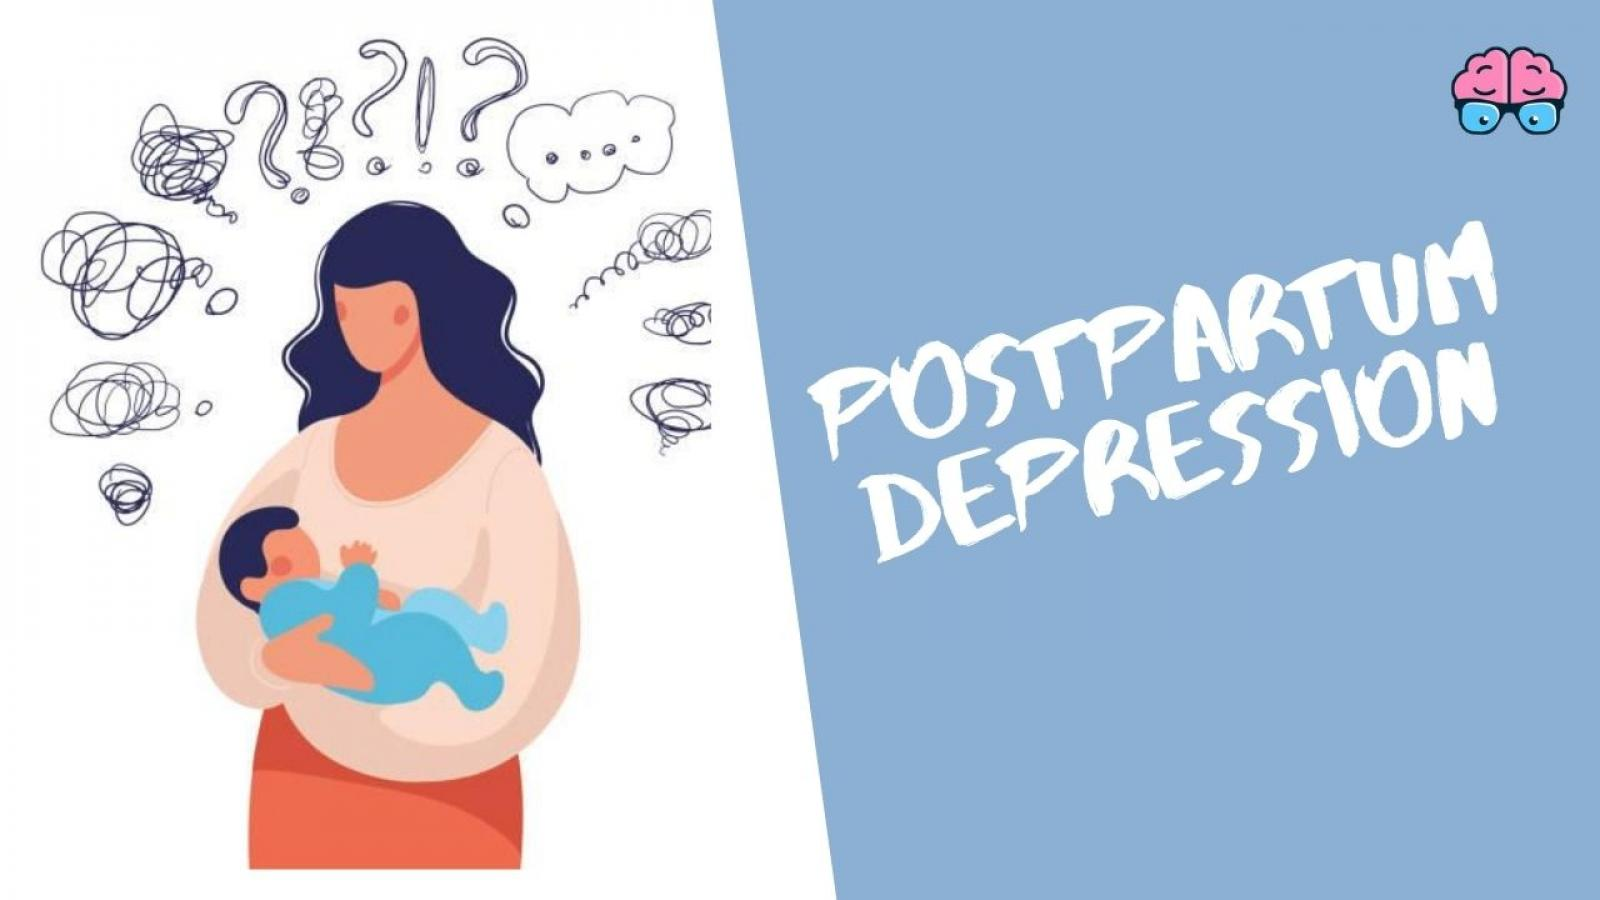 A Documentary About Postpartum Depression